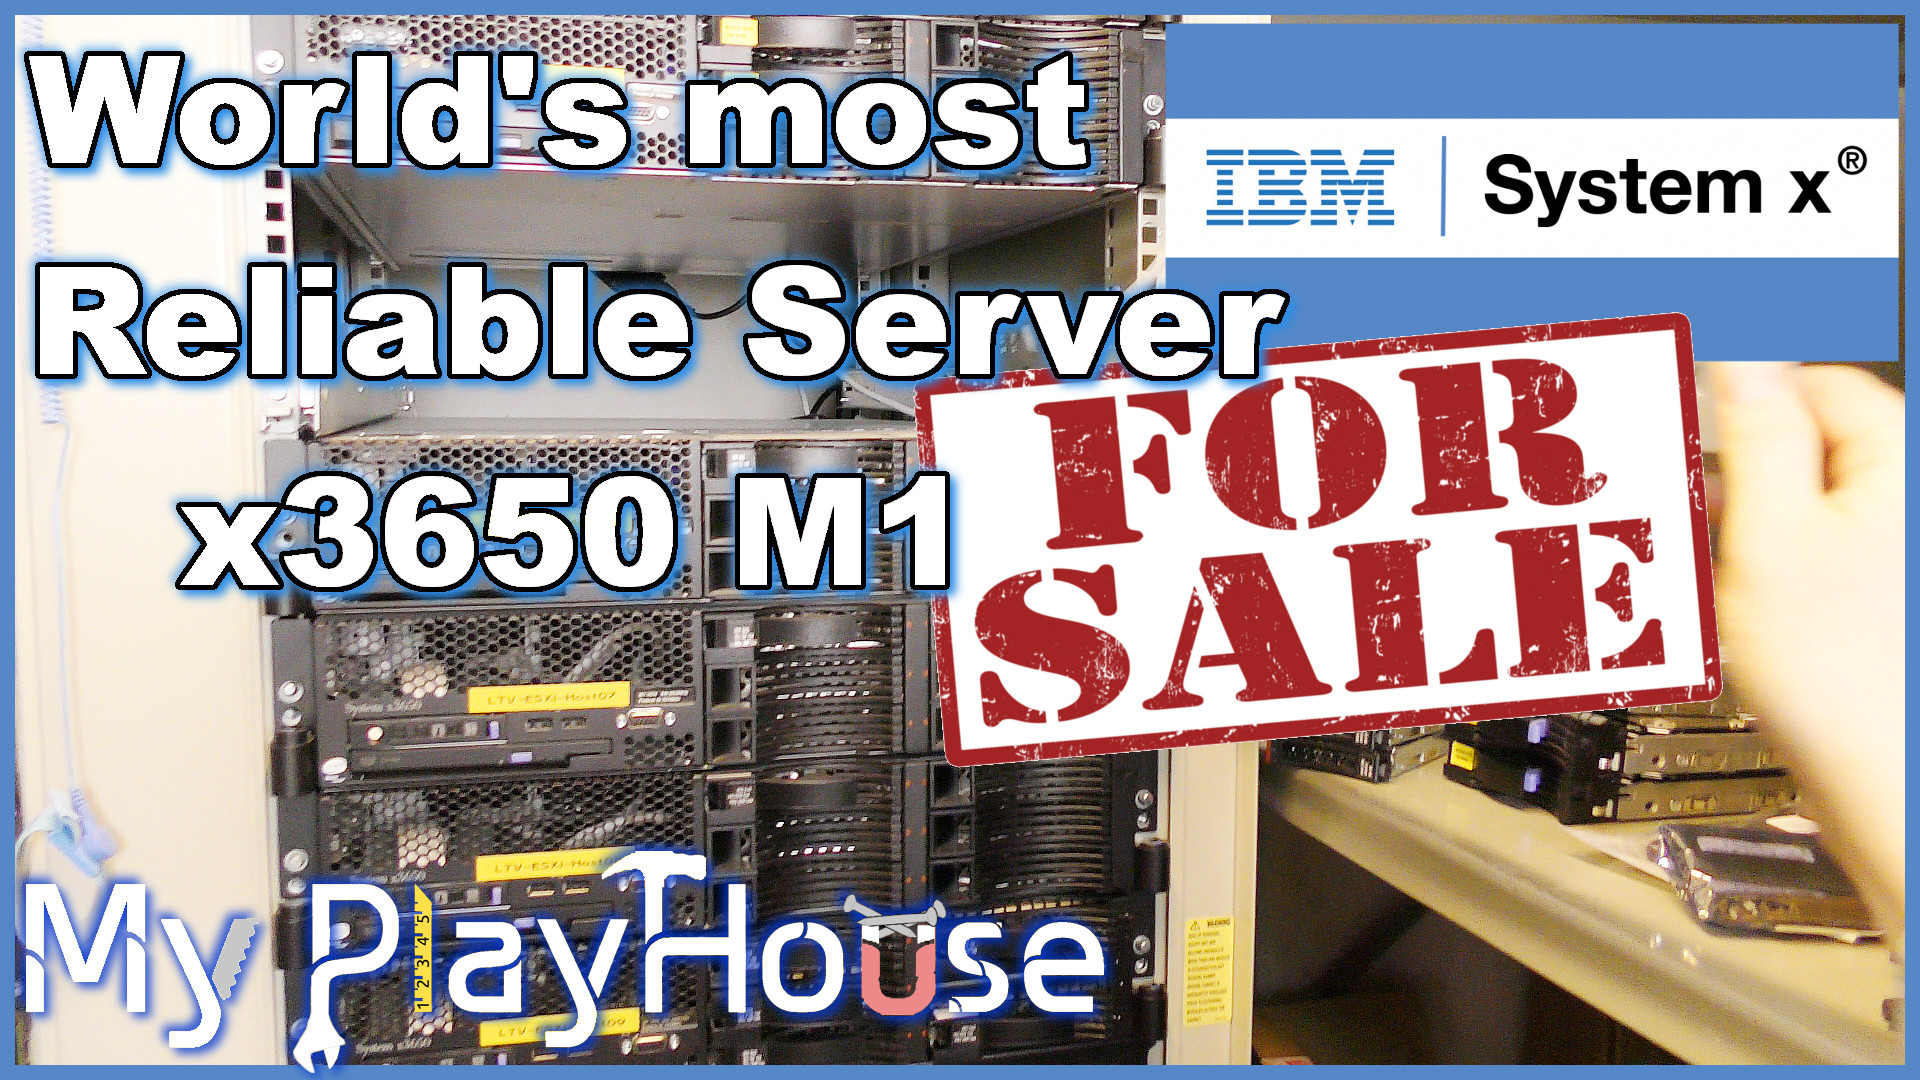 Selling 6 of the World's most Stable server - x3650 M1 - 615